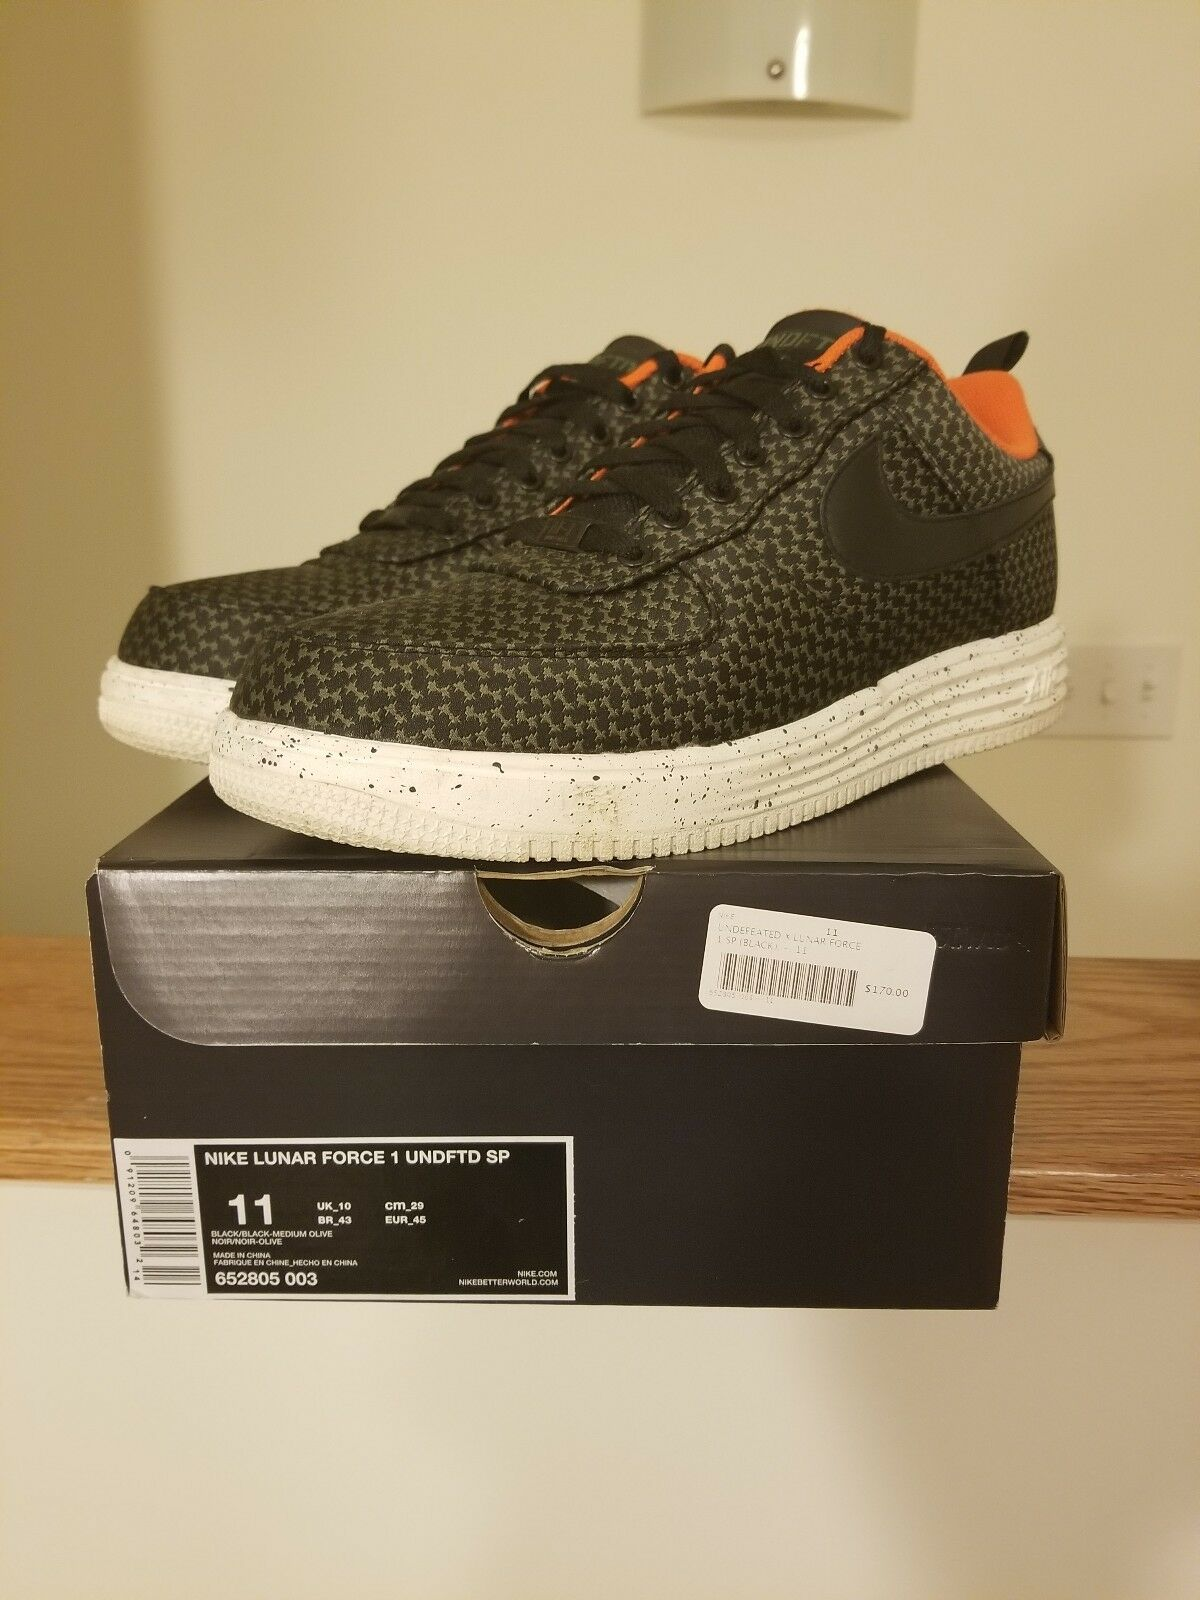 NIKE 1 X UNDEFEATED LUNAR FORCE 1 NIKE SP UNDFTD BLACK OLIVE 652805 003 WORN SIZE 11 db771e